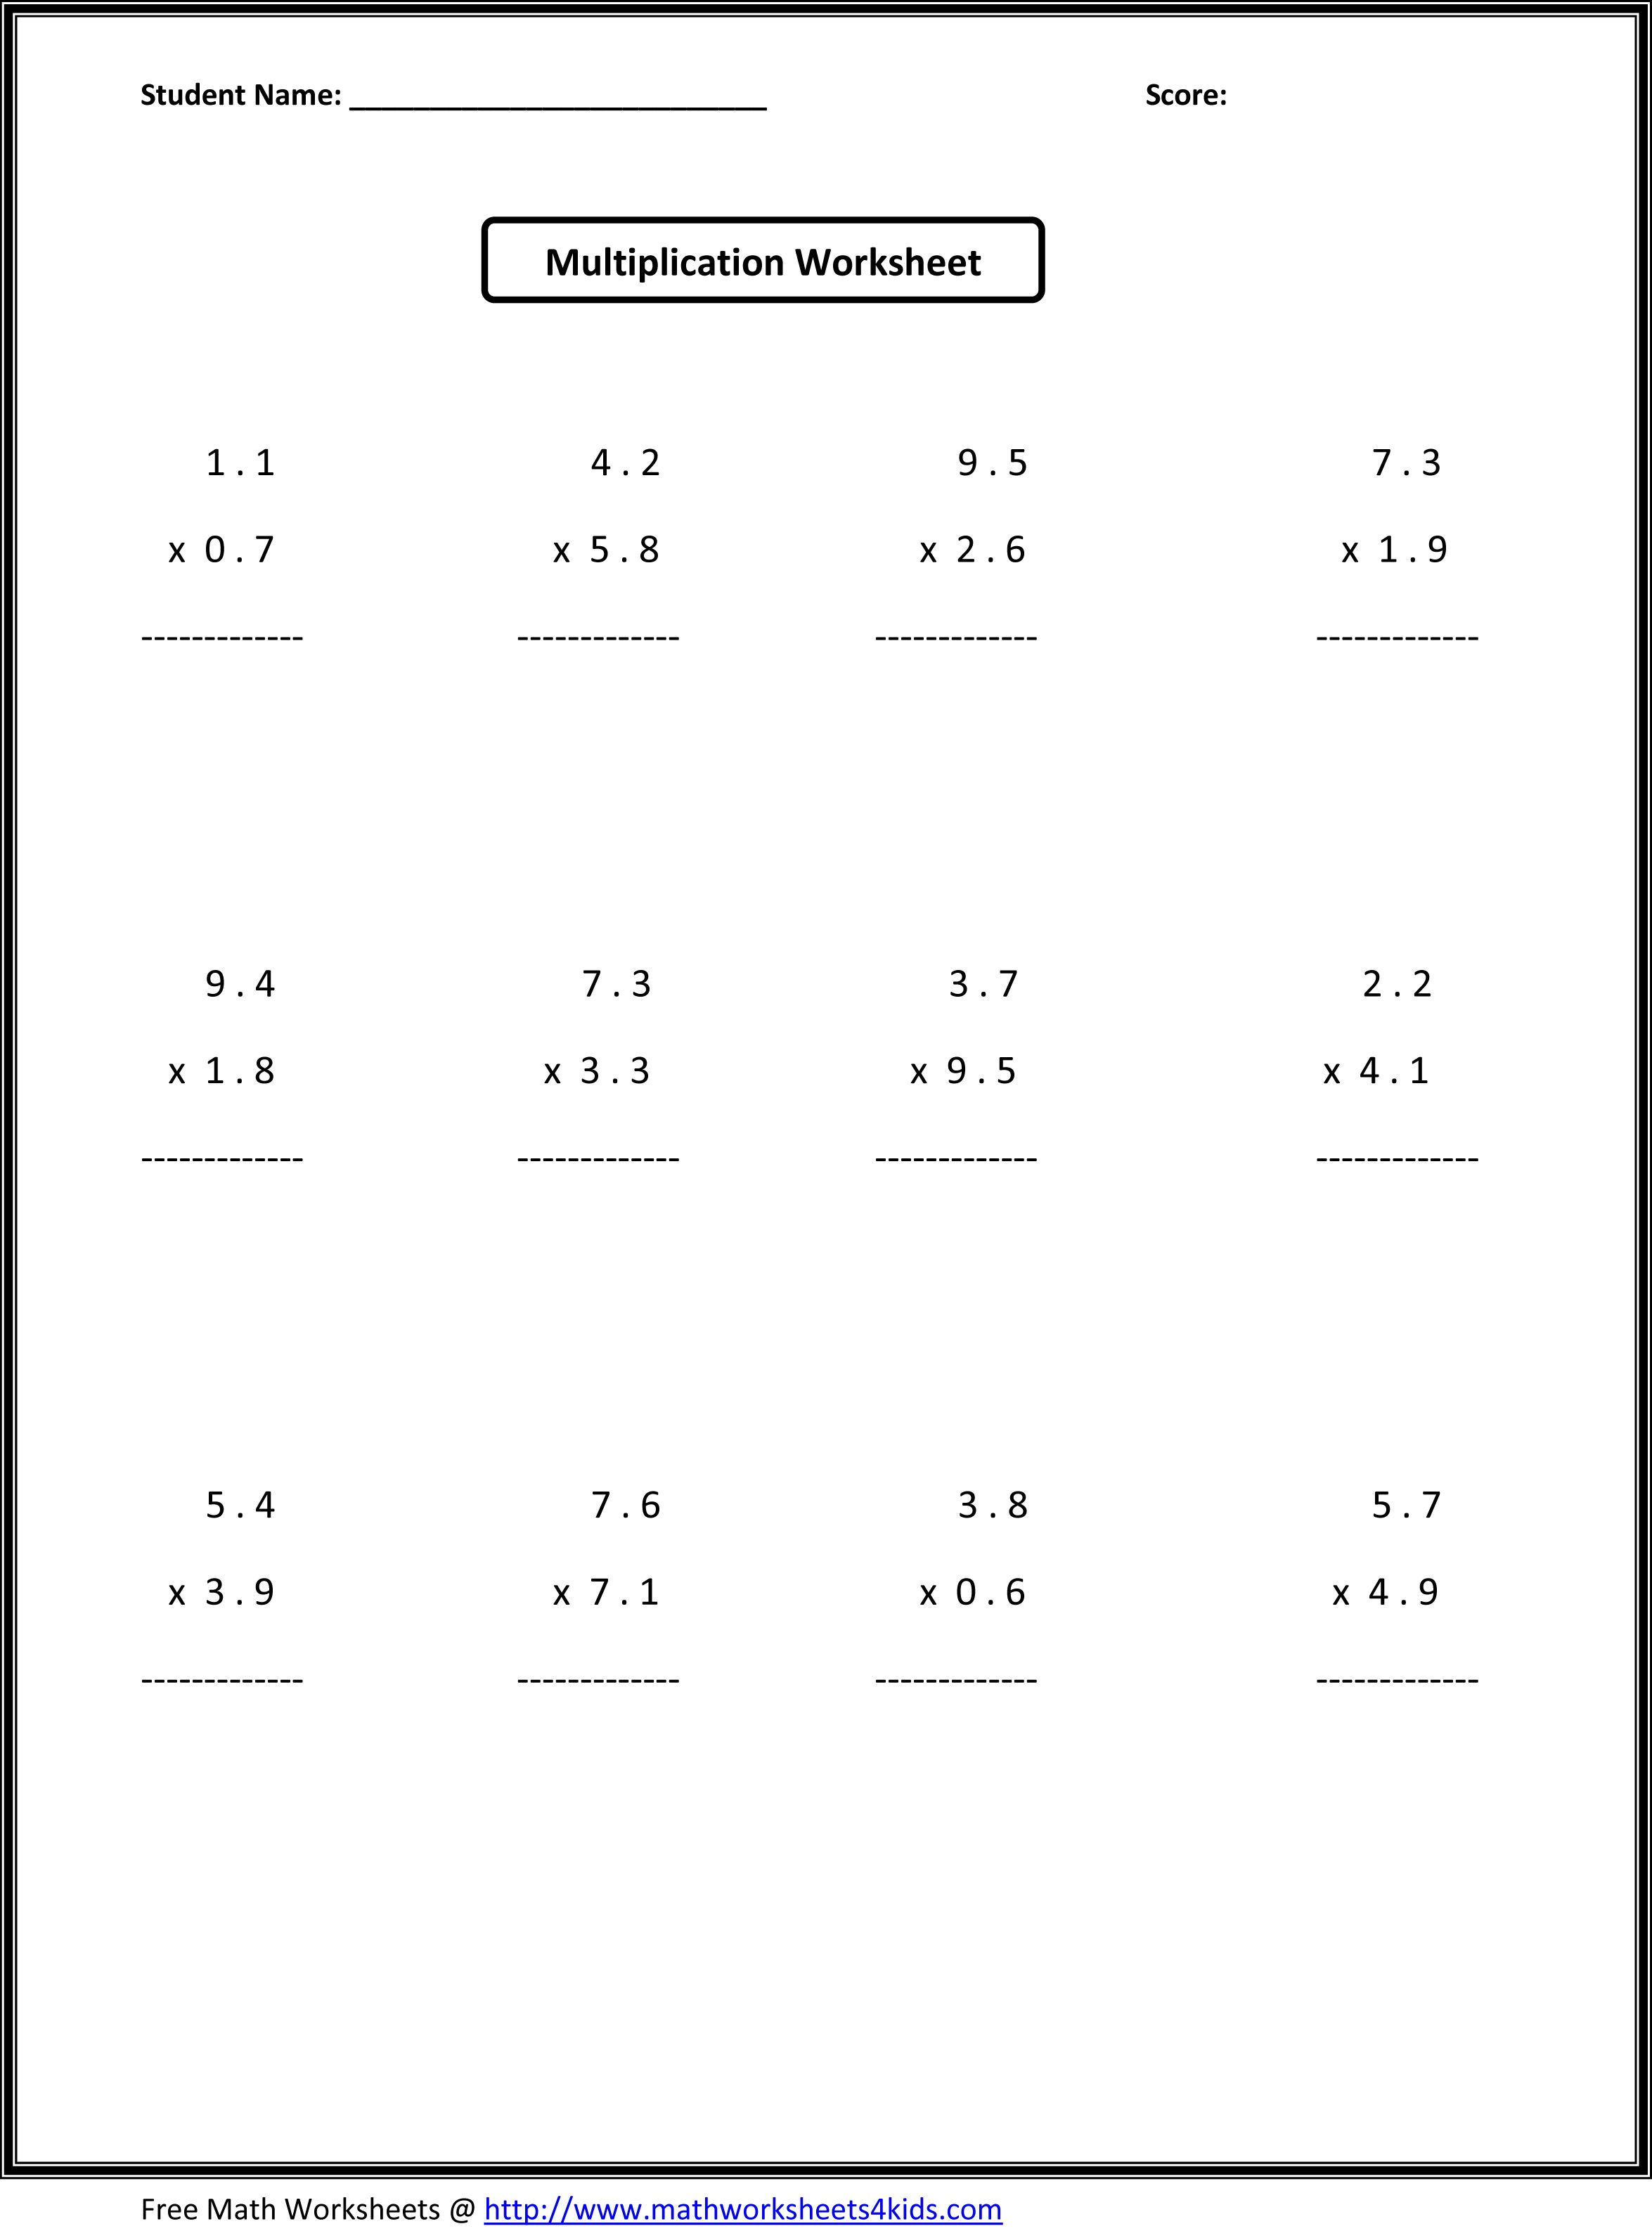 7th Grade Algebra Worksheets 7th Grade Math Worksheets – Math Worksheets for 8th Graders with Answers